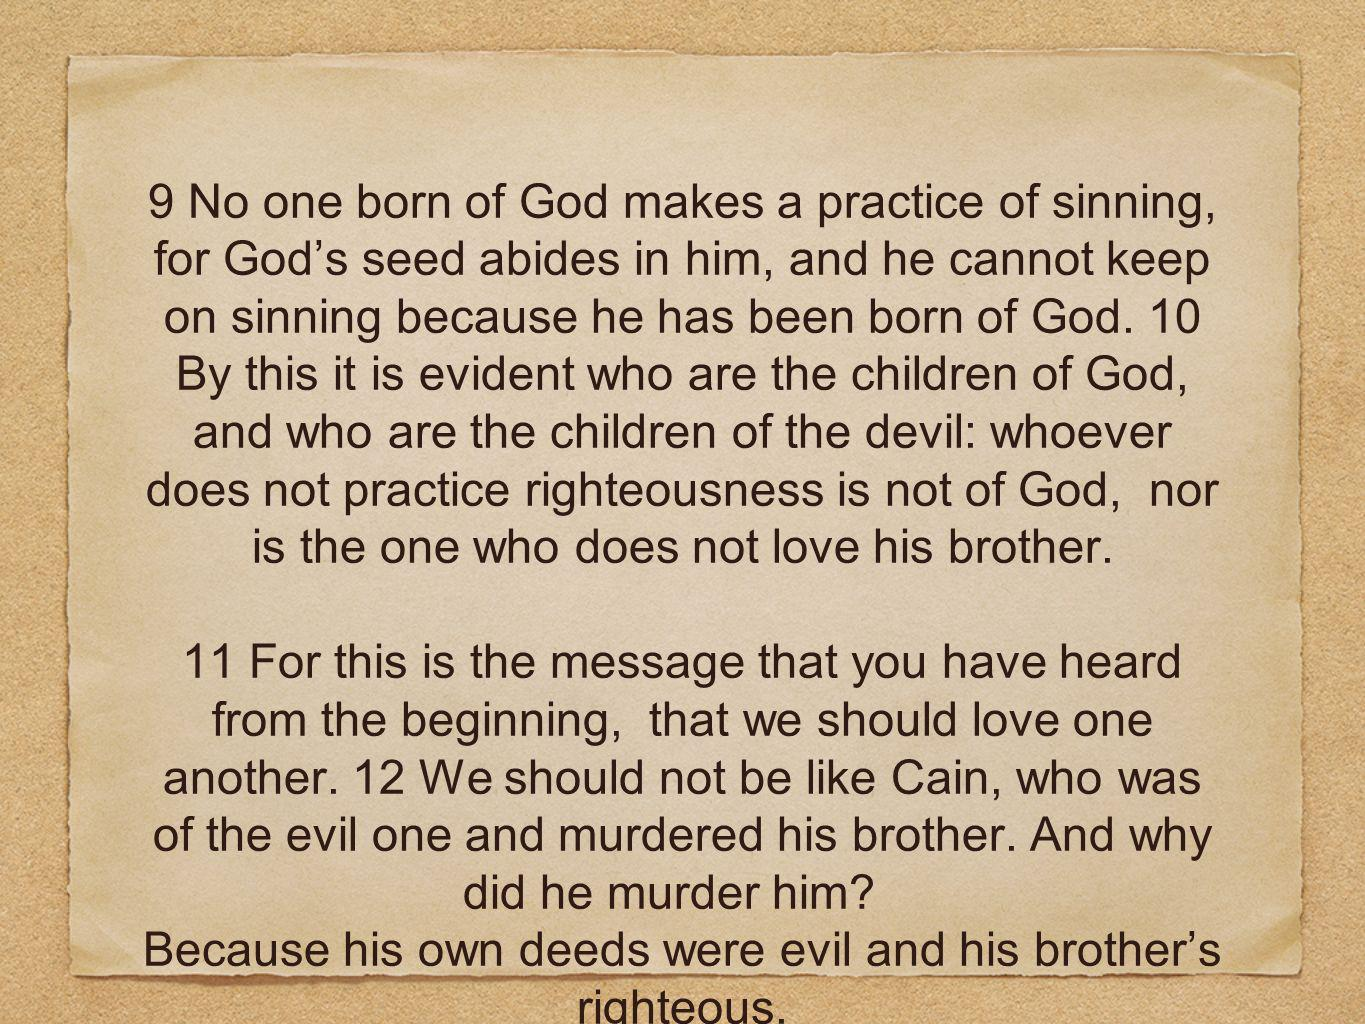 9 No one born of God makes a practice of sinning, for Gods seed abides in him, and he cannot keep on sinning because he has been born of God.